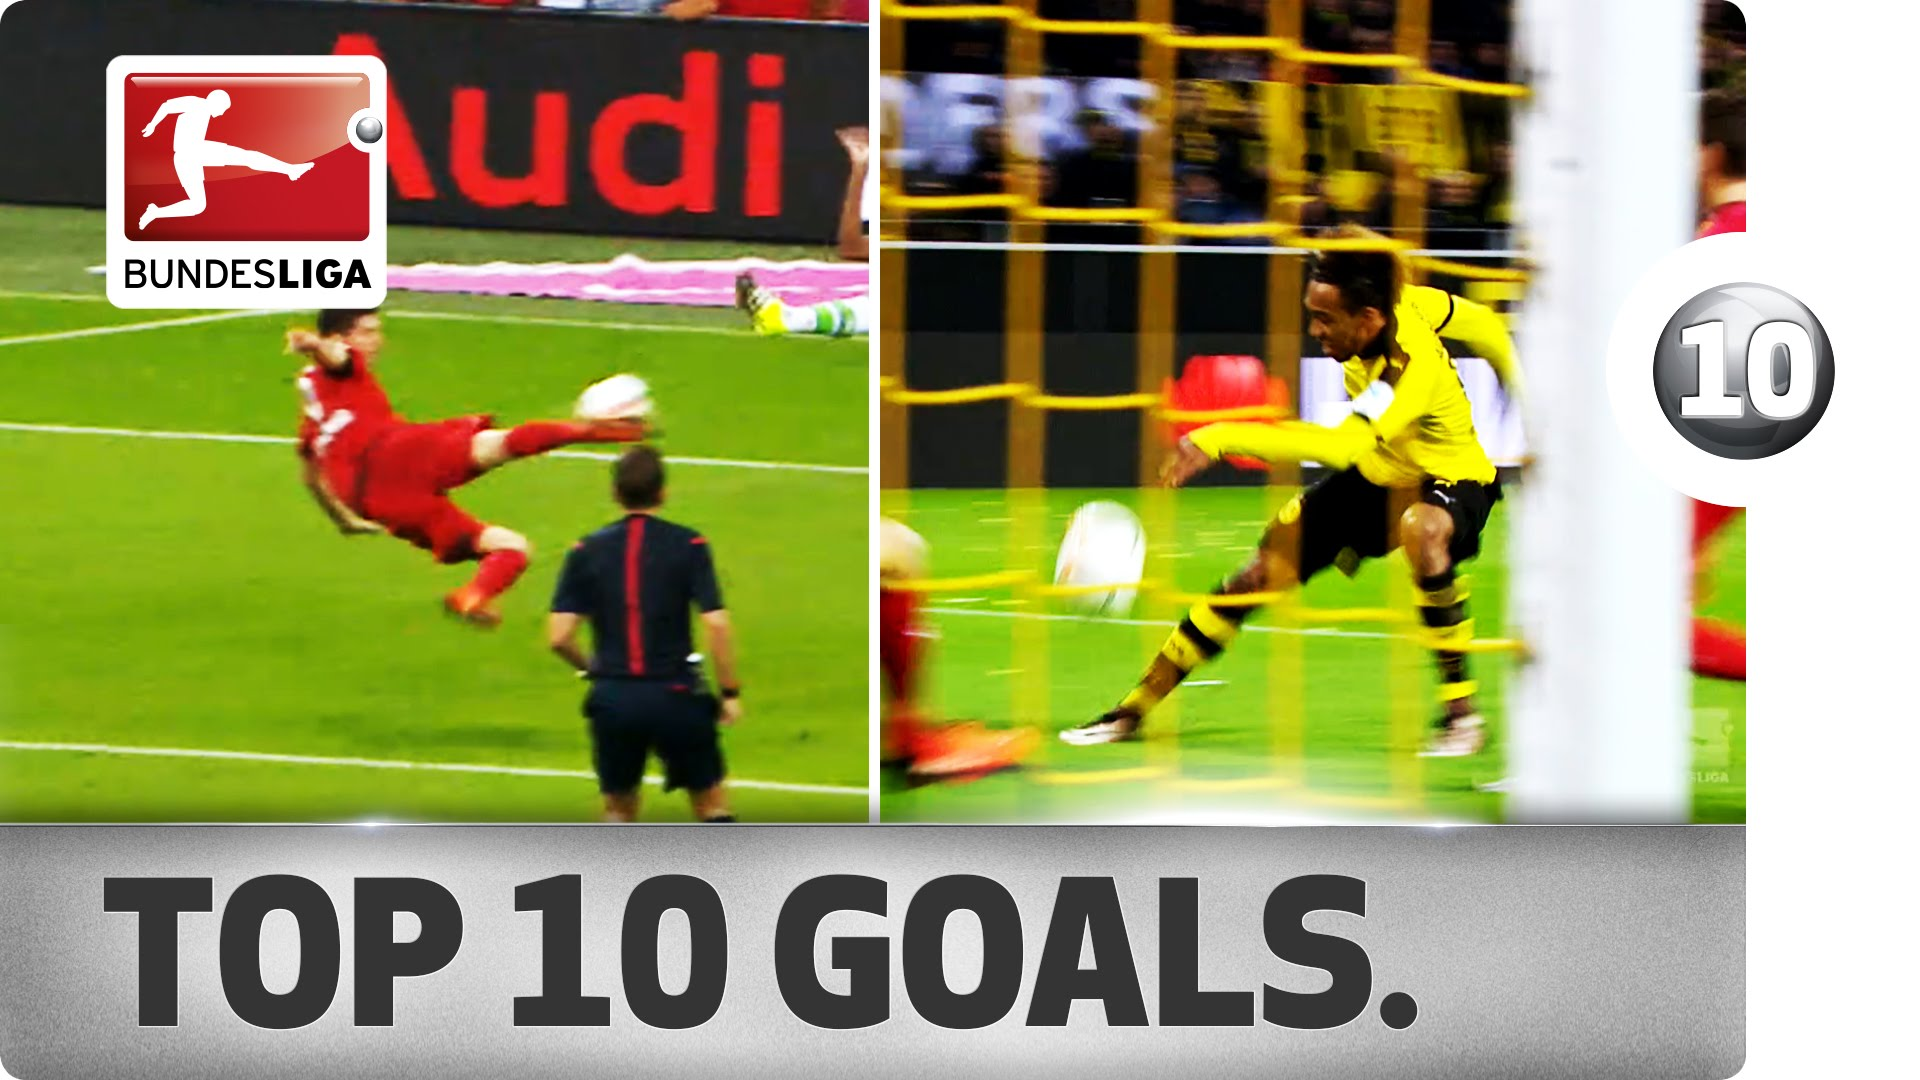 Top 10 Bundesliga Goals During The First Half Of 2015/16 Season